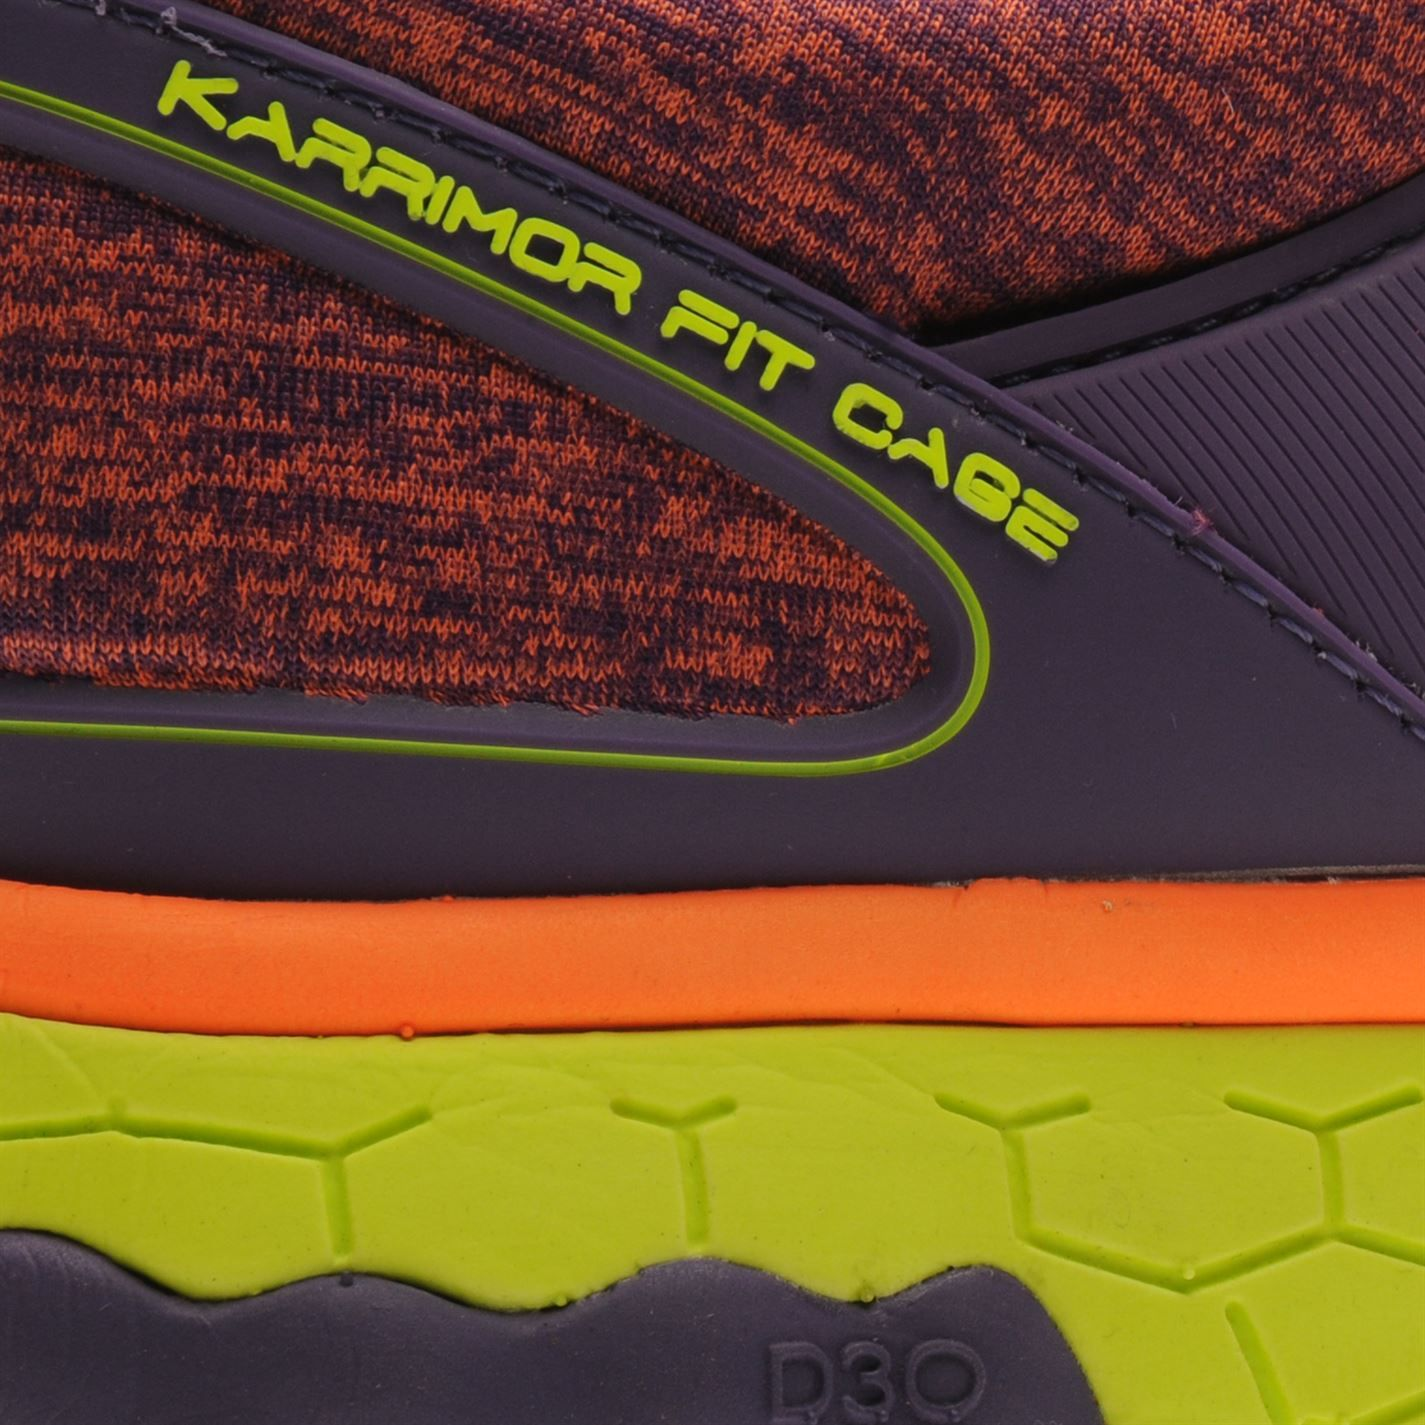 Excel support ladies running shoes fashion branding